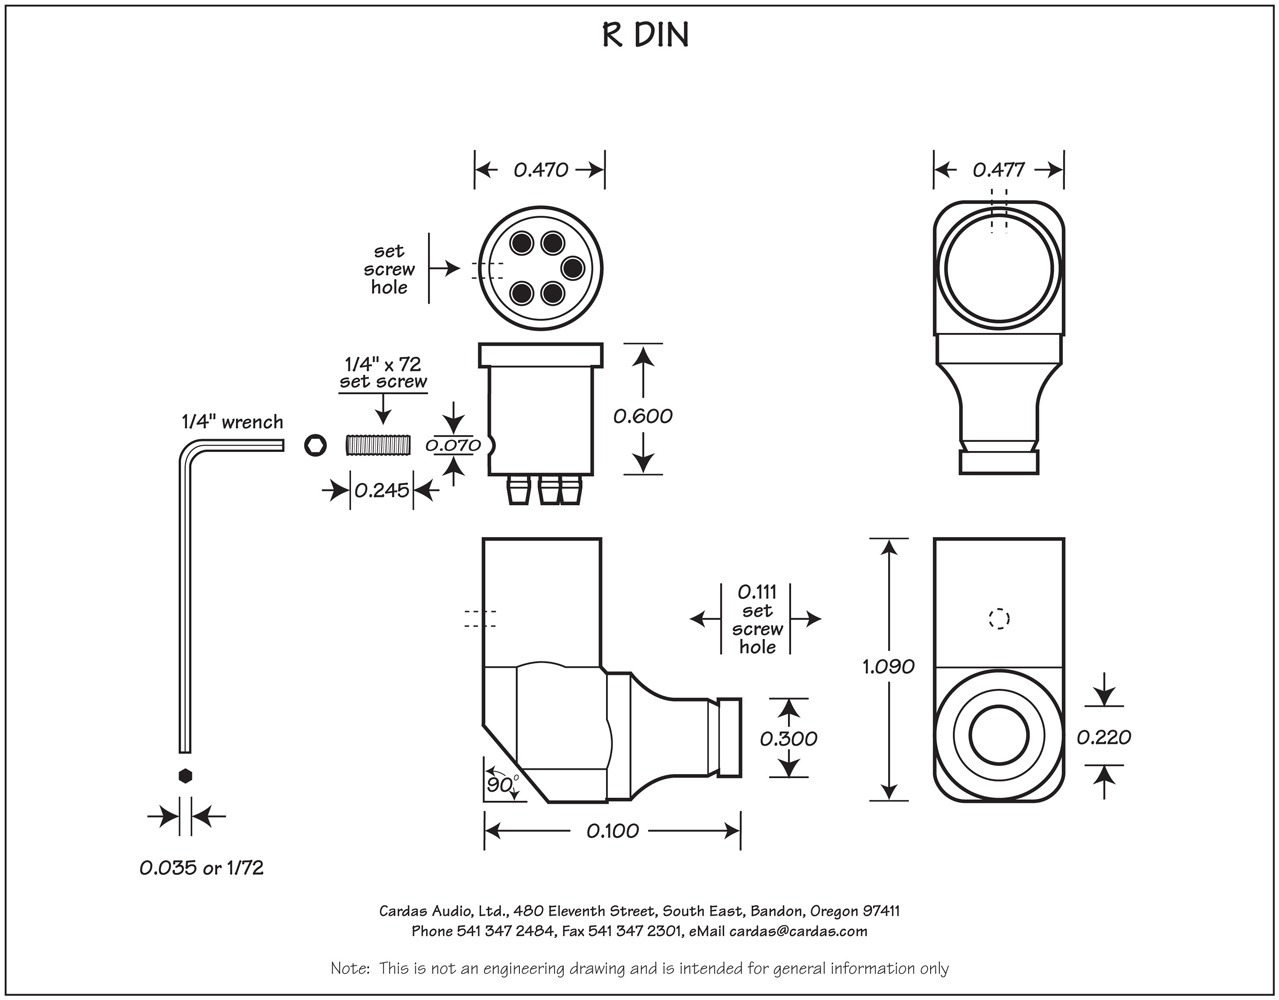 wiring diagram for 1 pin din plug   33 wiring diagram